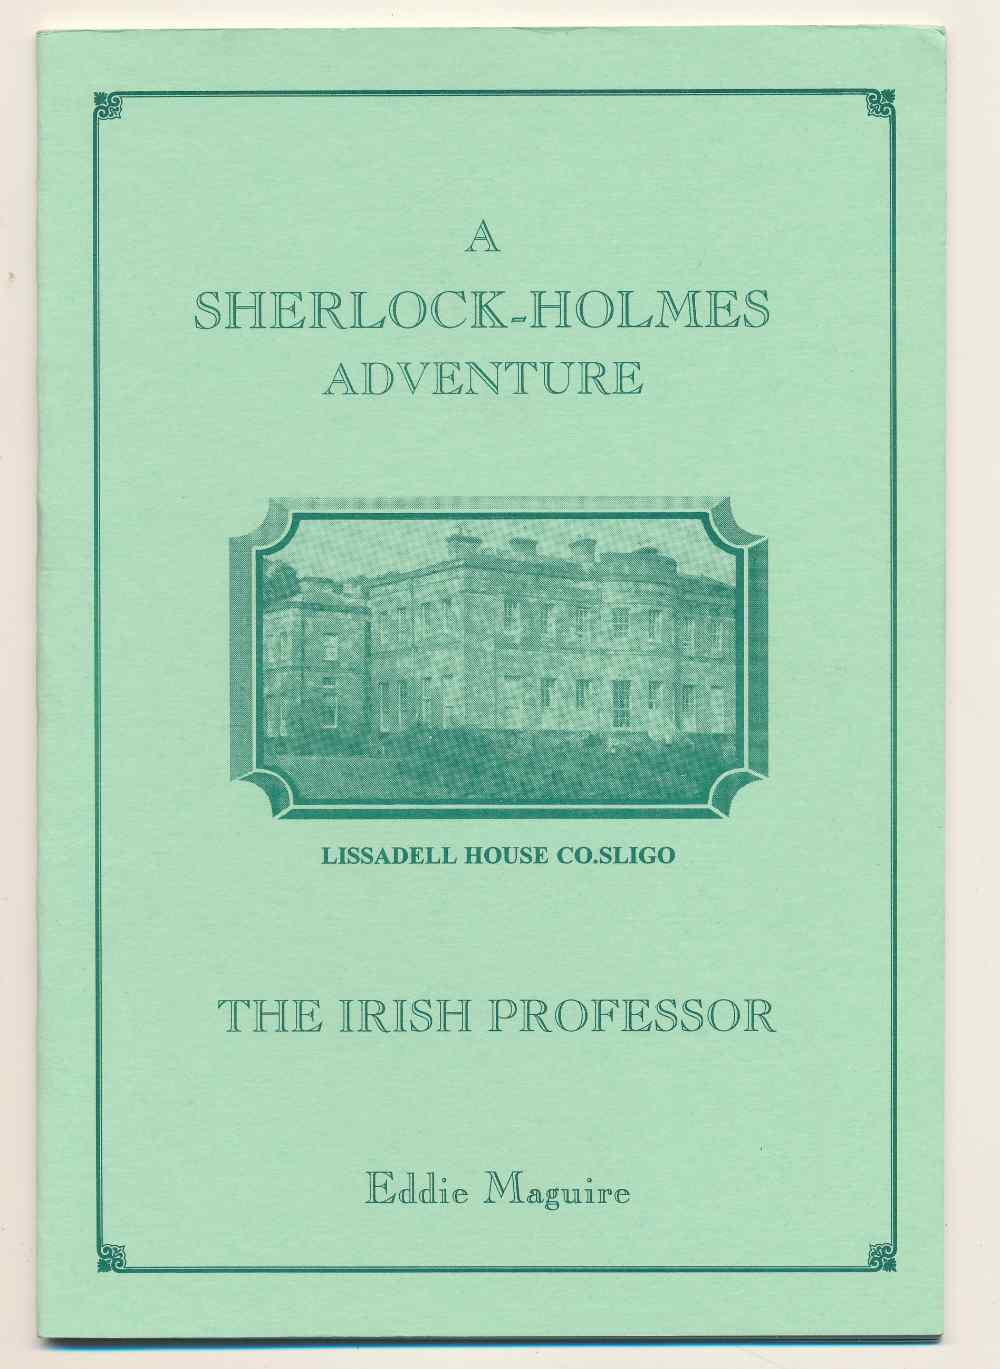 The Irish professor